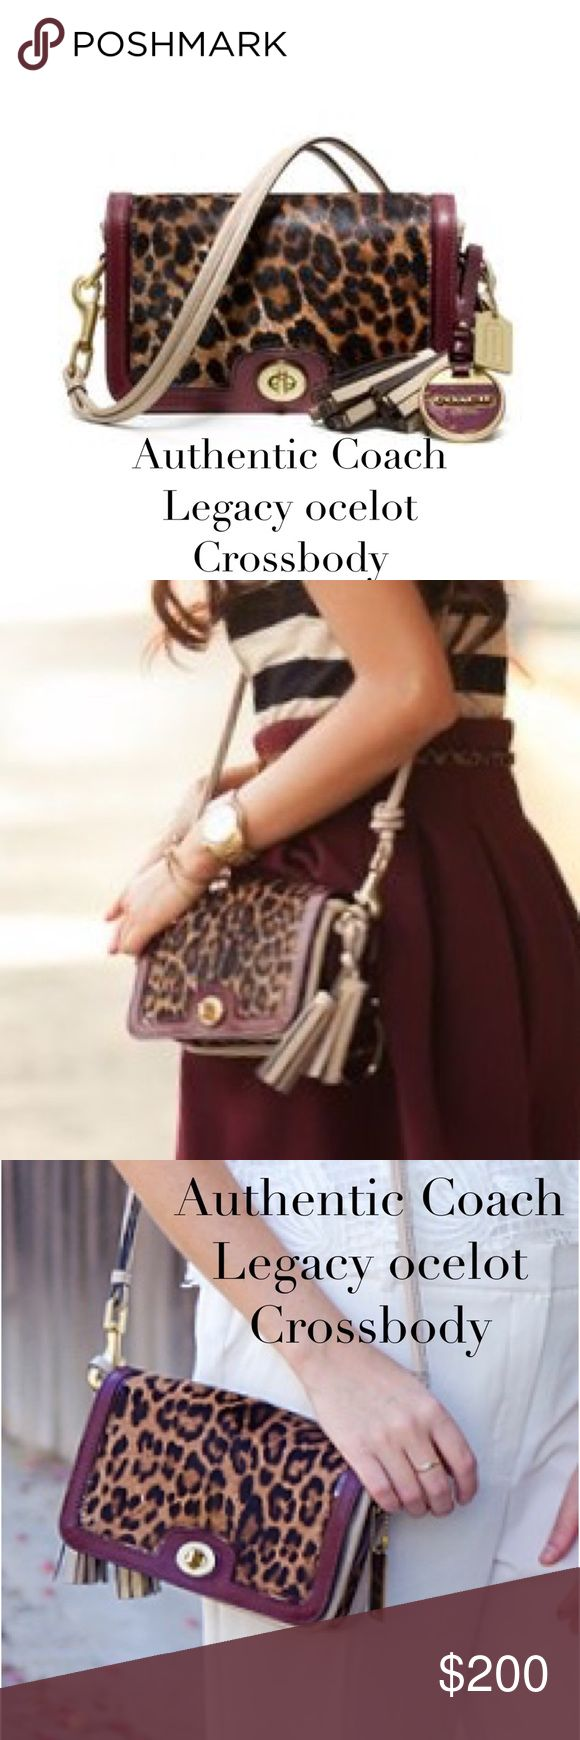 """Authentic Coach Legacy ocelot crossbody bag Coach Legacy ocelot flap crossbody bag. Front flap and top is hair calf. The aubergine leather is a beautiful complement to hair calf The sides are a putty color leather. Back zippered pocket. Slit compartment under front flap. Can be worn as a crossbody with its double leather strap with 20"""" drop or as a clutch. Wear of hair calf (on pictures above) is not easily noticeable when carried and other than that, the bag is impeccable inside and out…"""